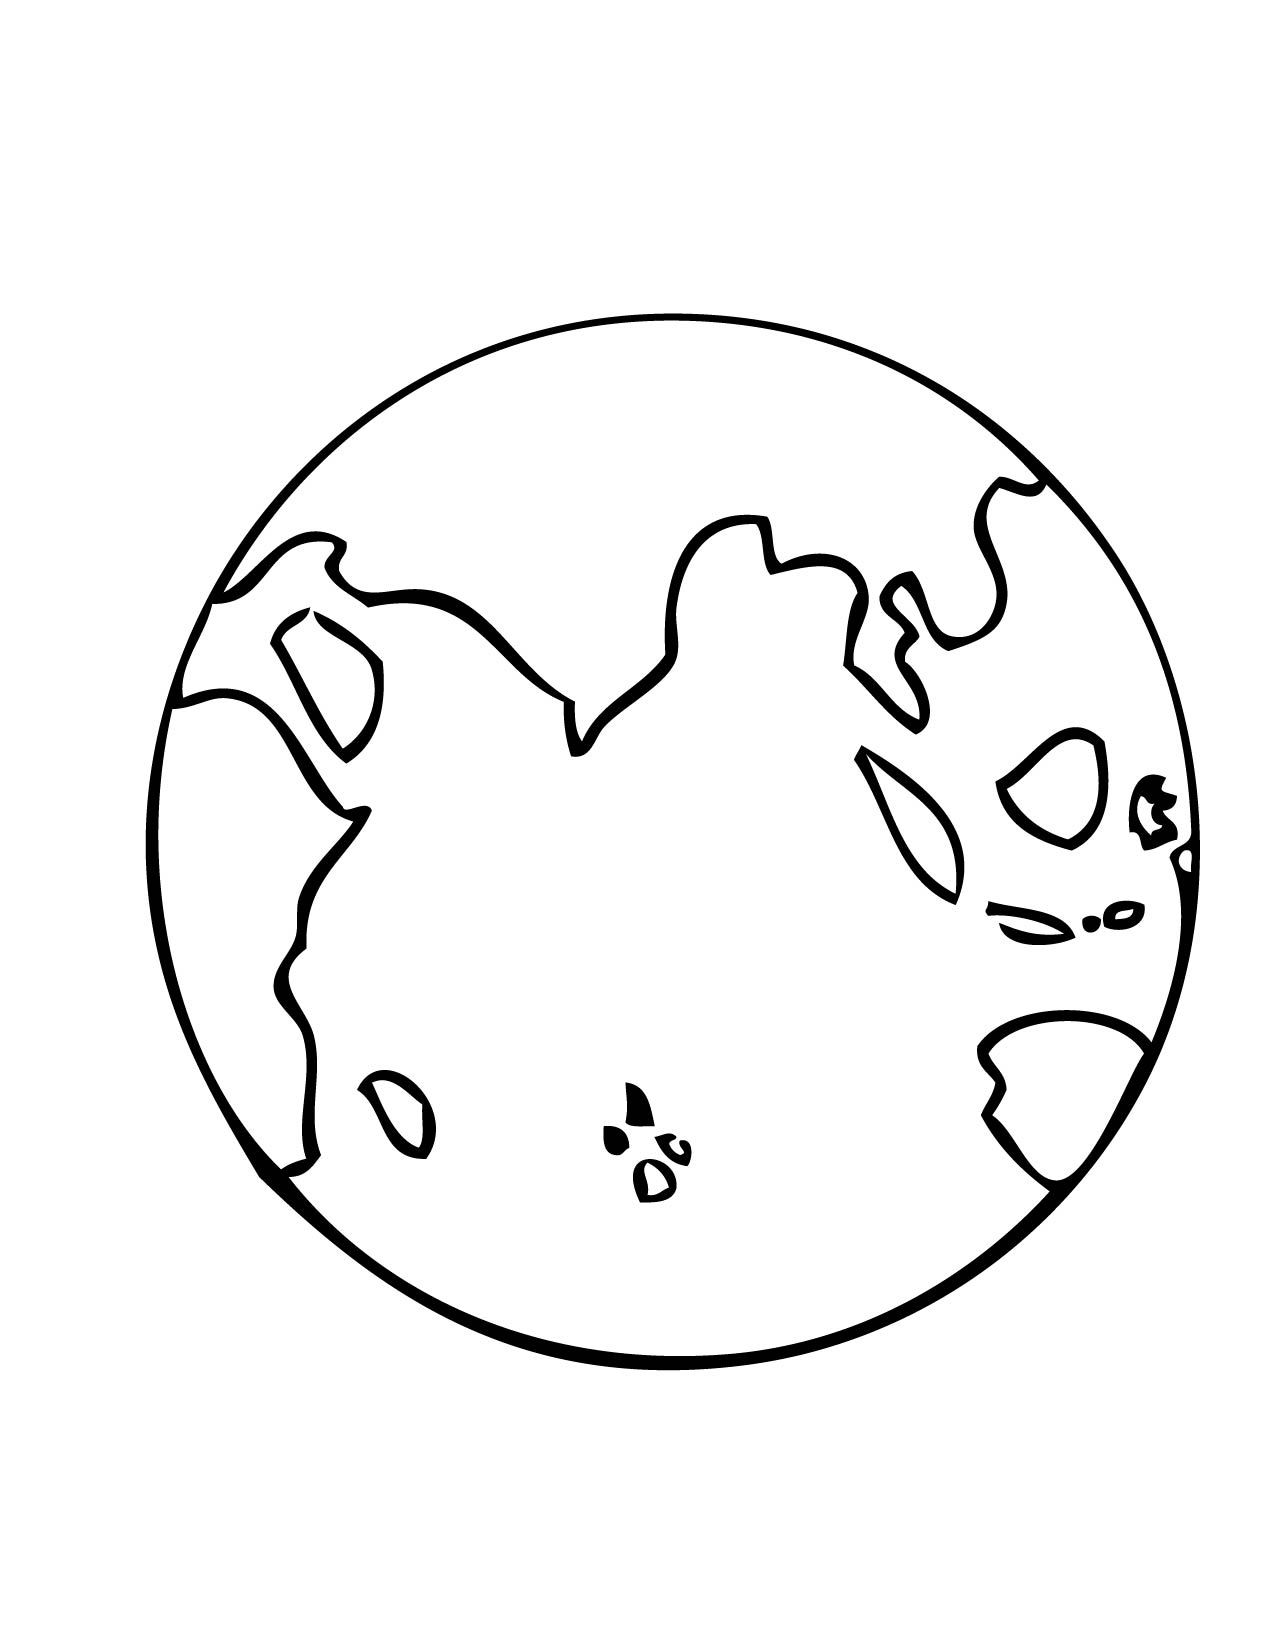 Earth Layers Coloring Worksheet Sketch Coloring Page